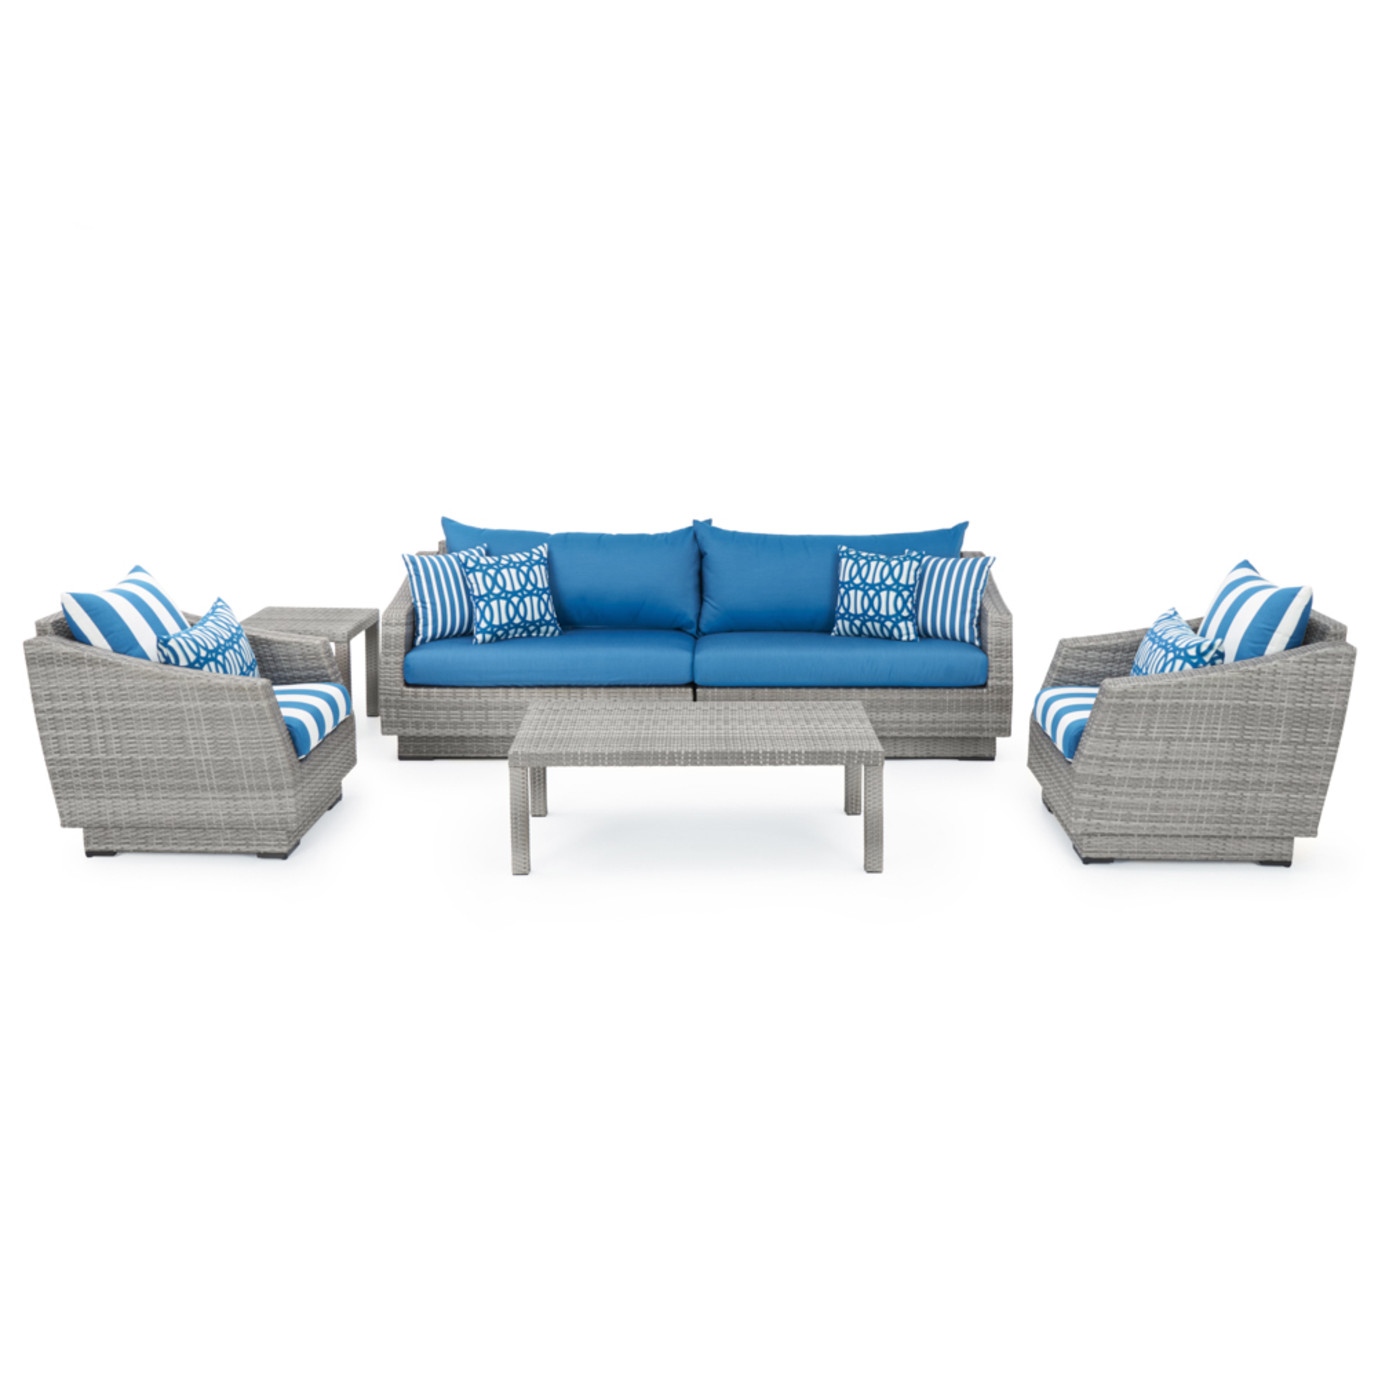 Cannes™ 6pc Sofa and Club Chair Set - Regatta Blue